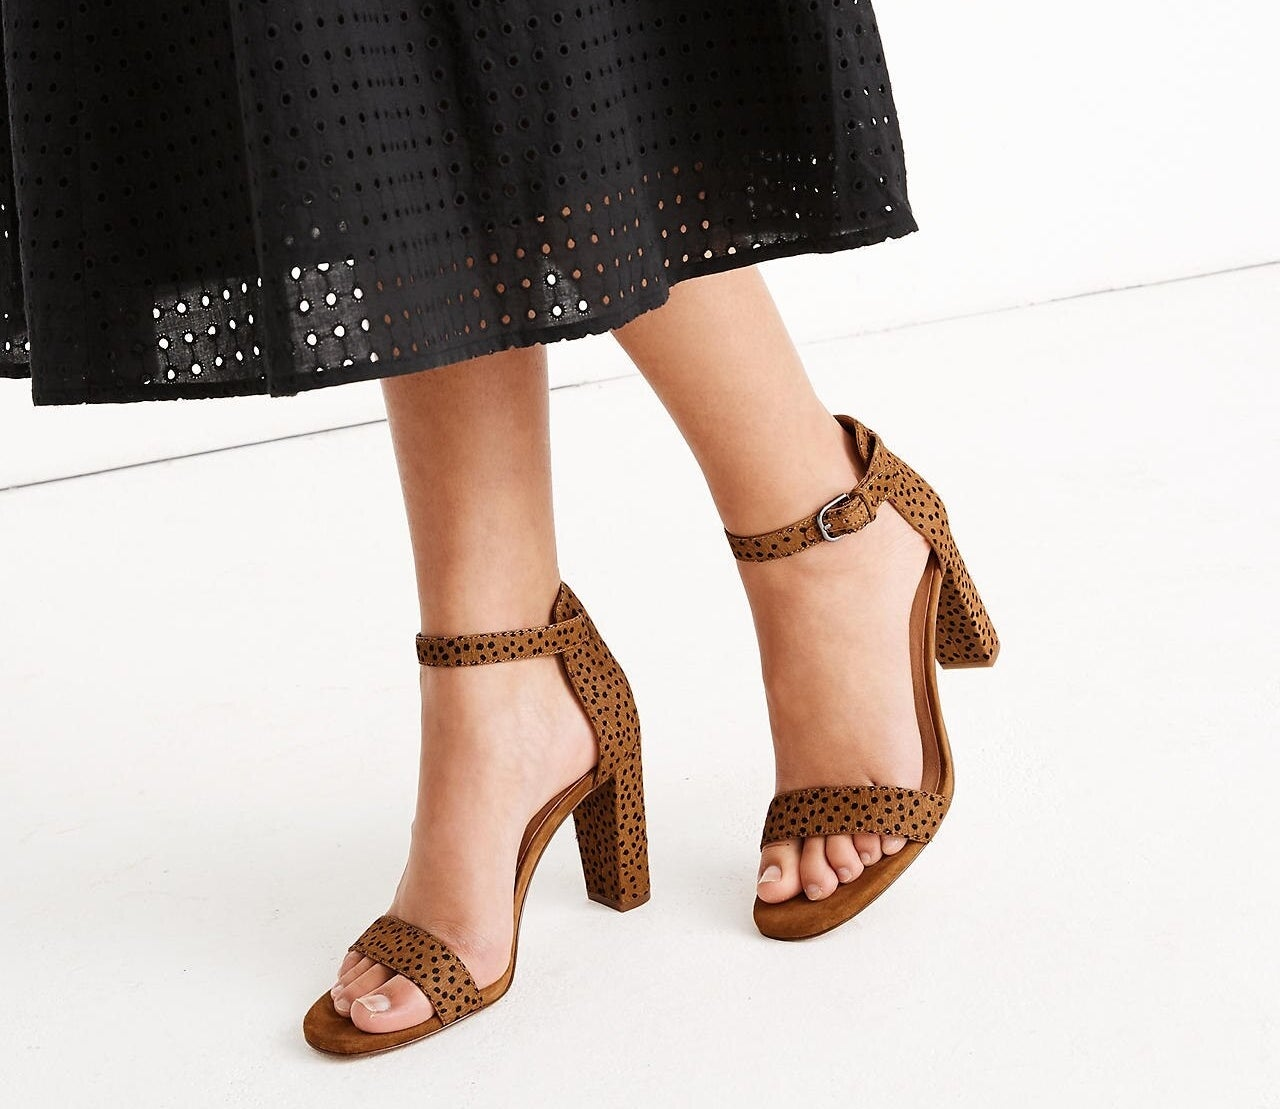 the block heels with an ankle strap in brown with black spots